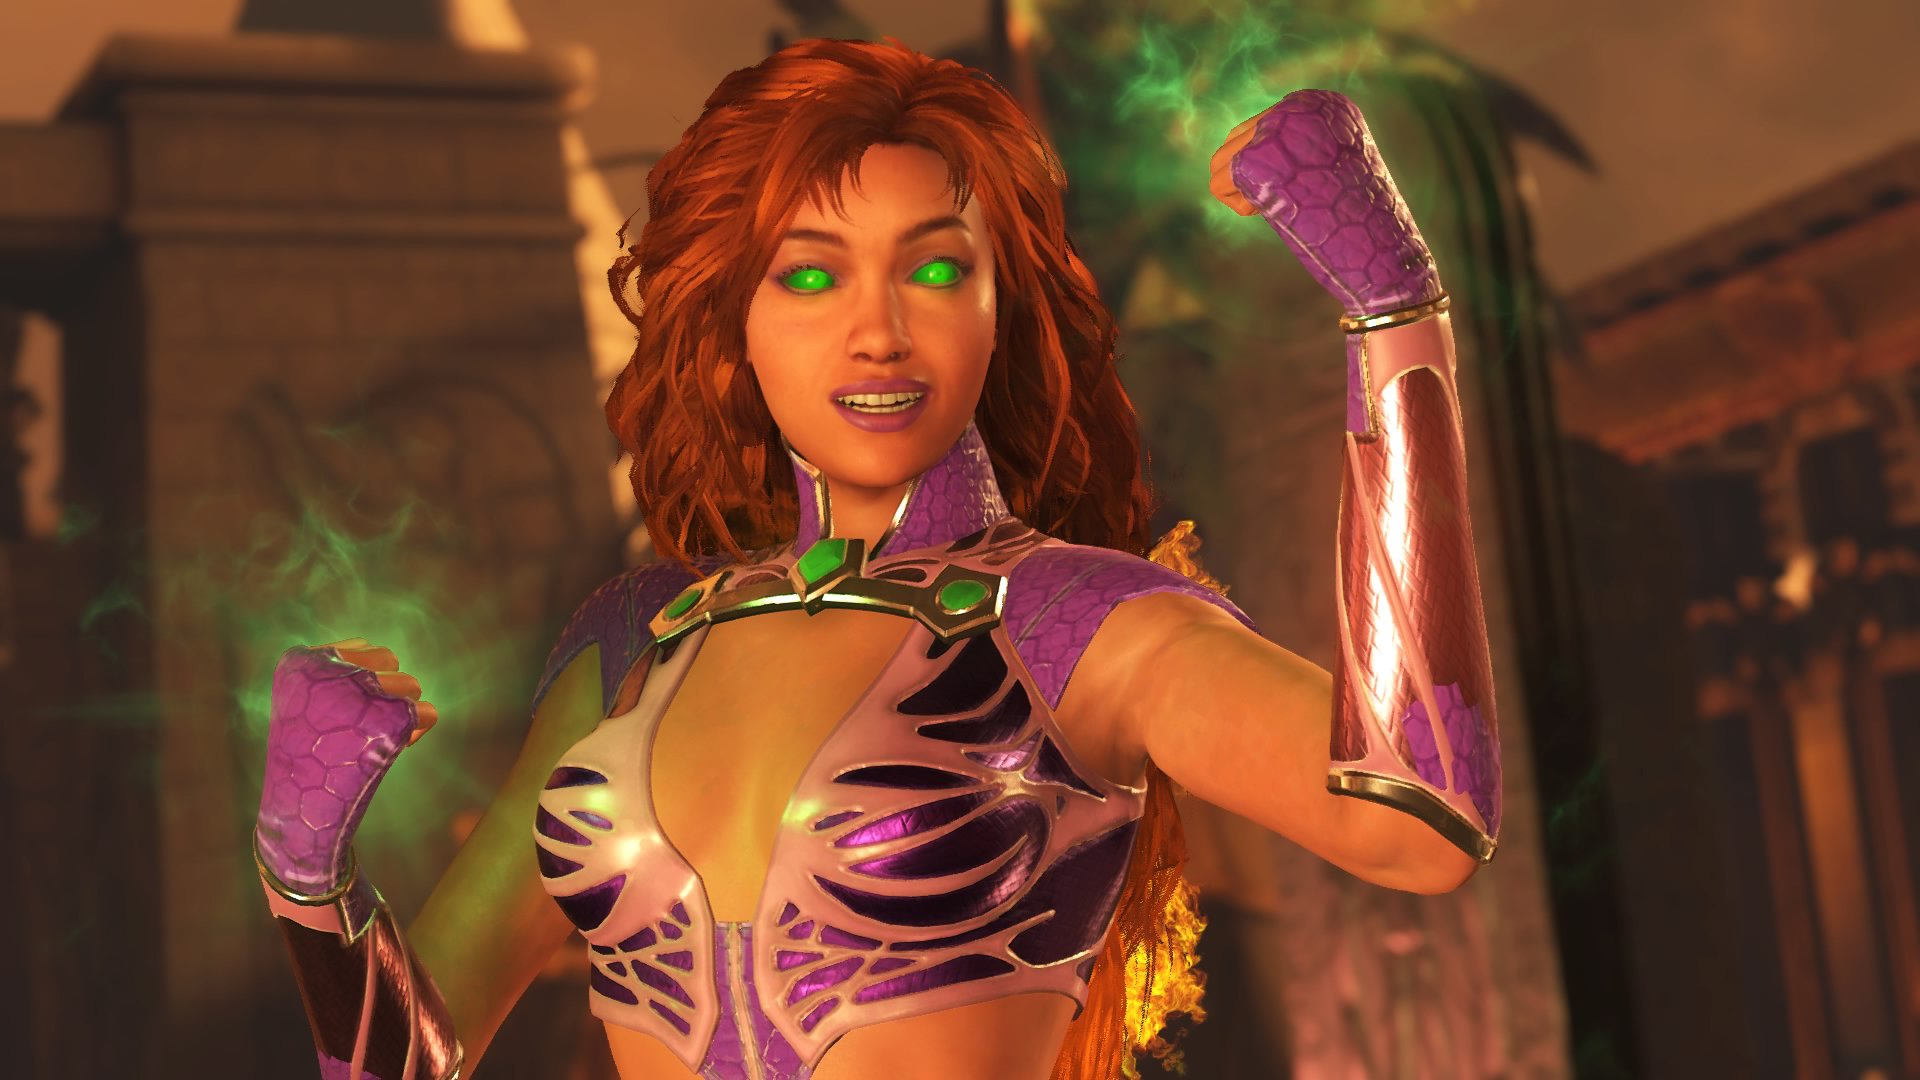 Starfire Gets The Royal Treatment In Injustice 2